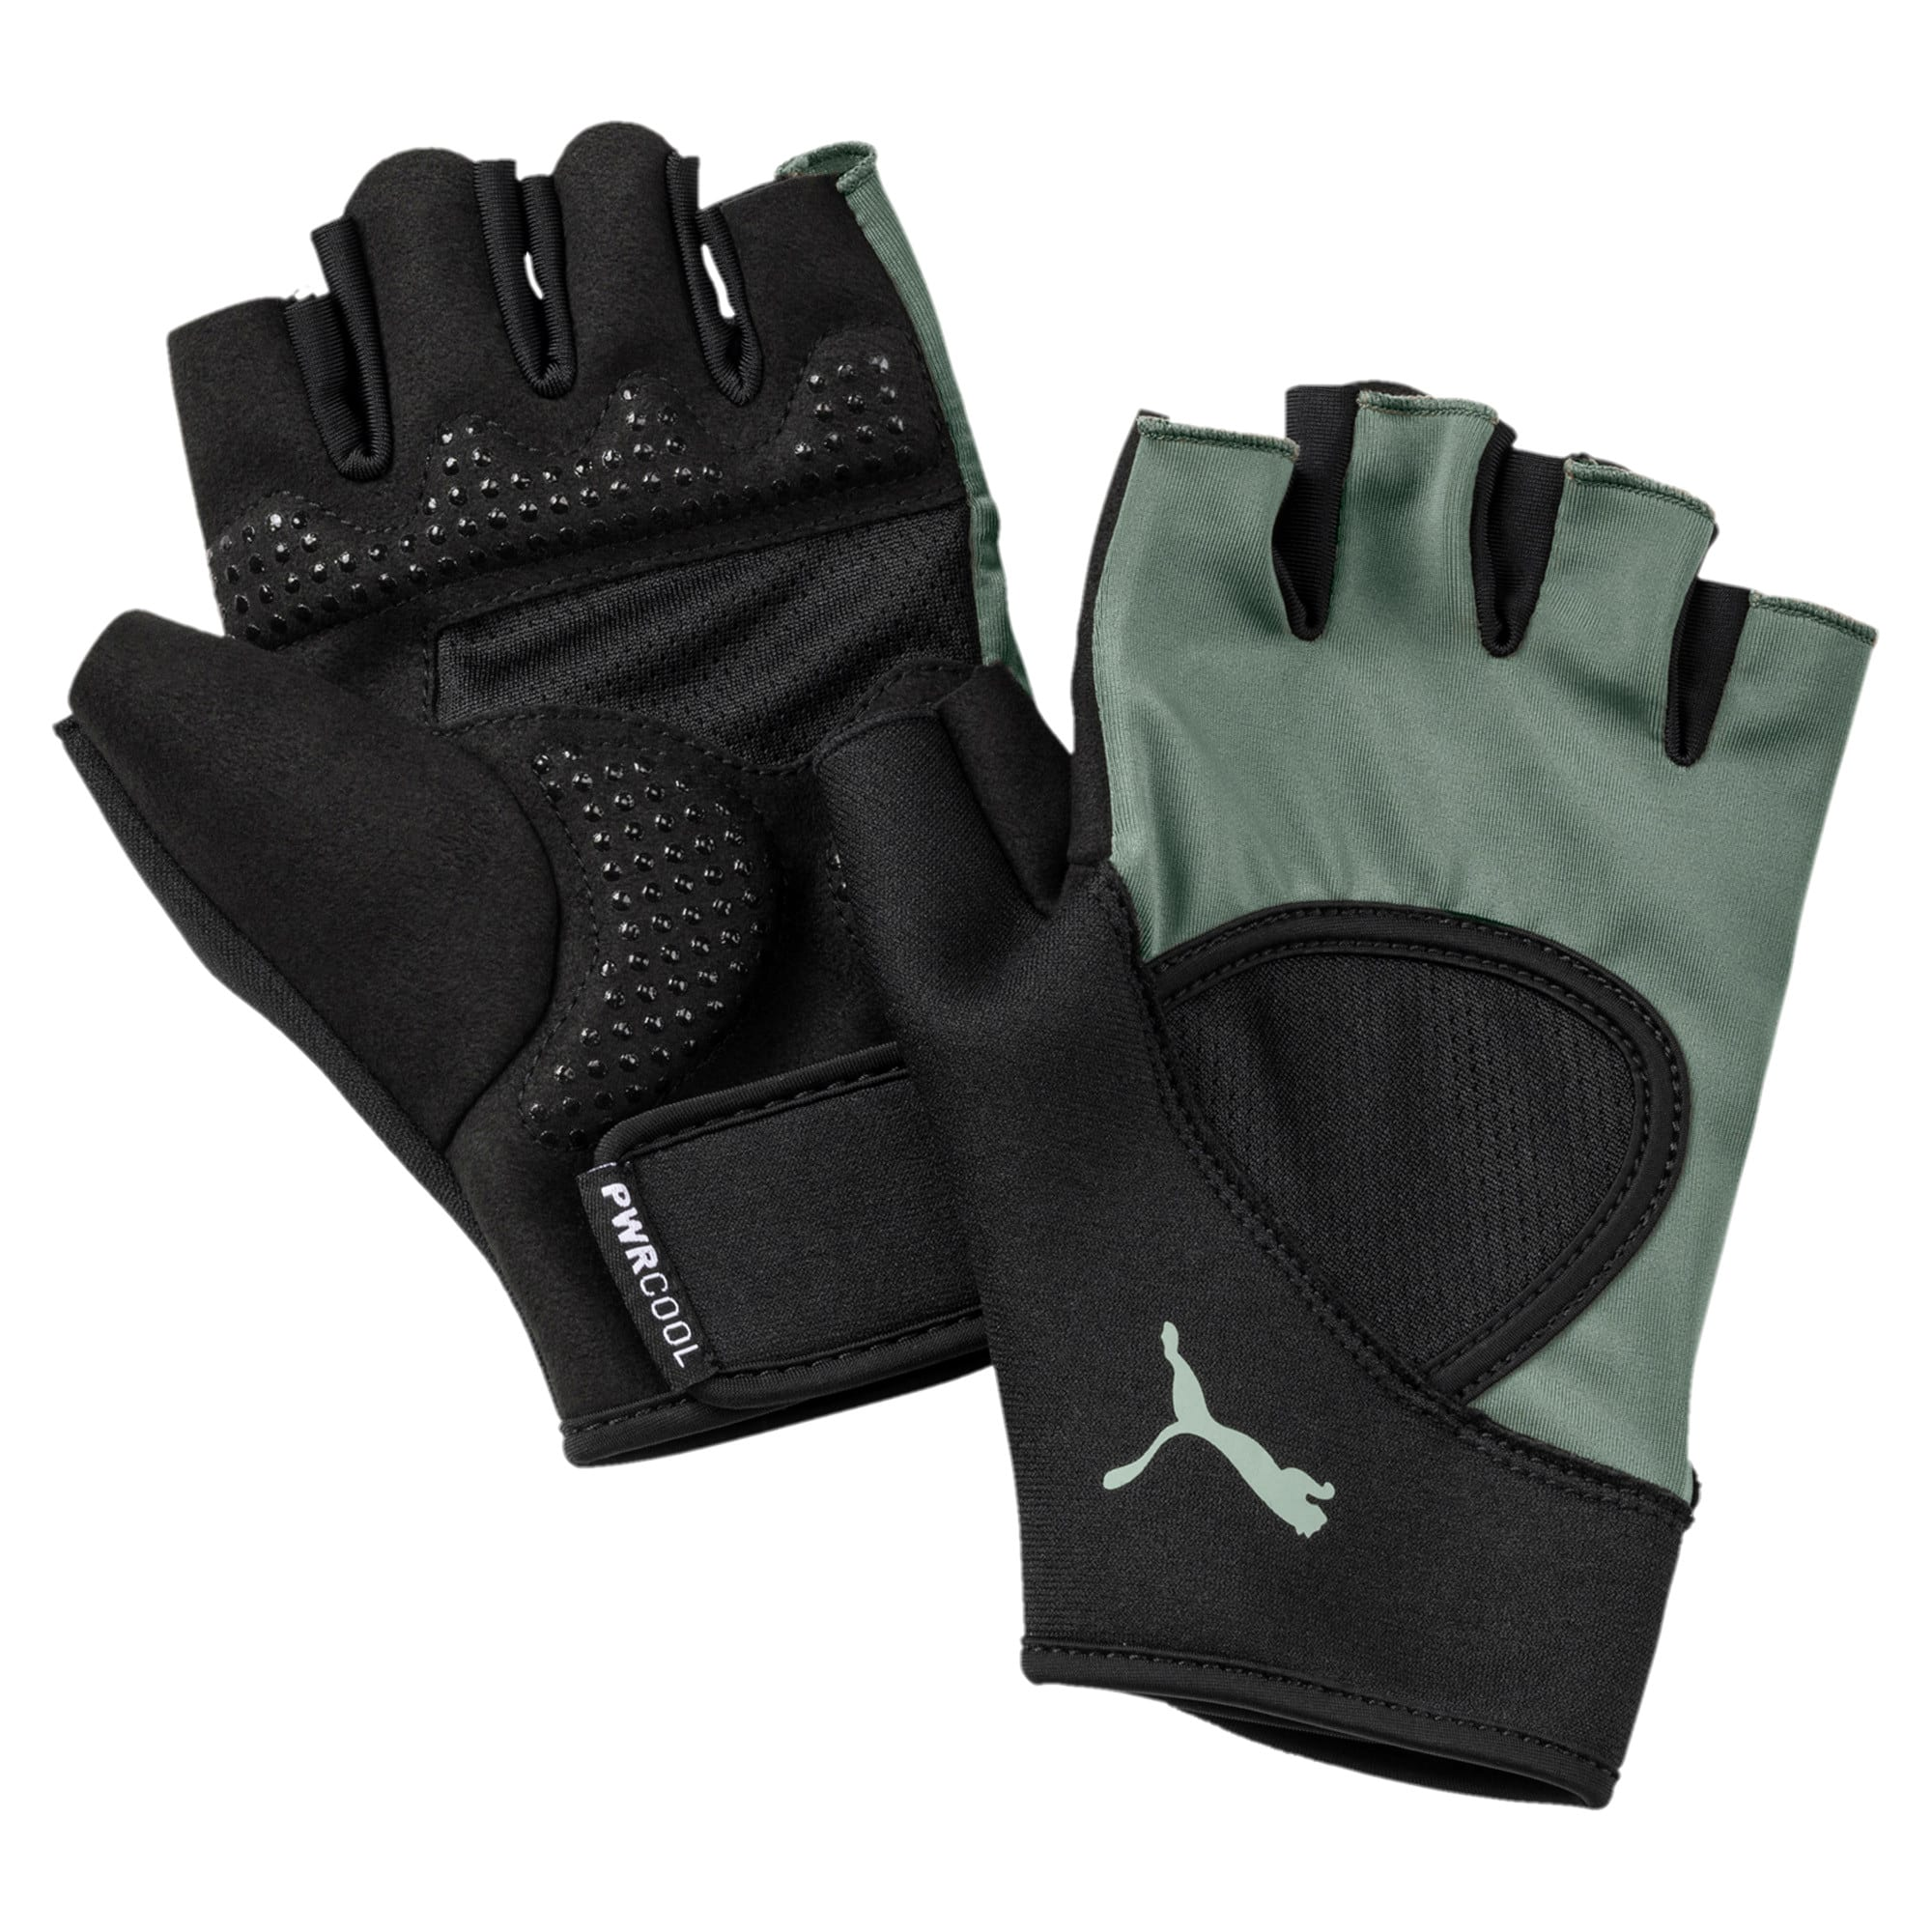 Thumbnail 1 of Essential Training Fingered Gloves, Puma Black-Laurel Wreath, medium-IND